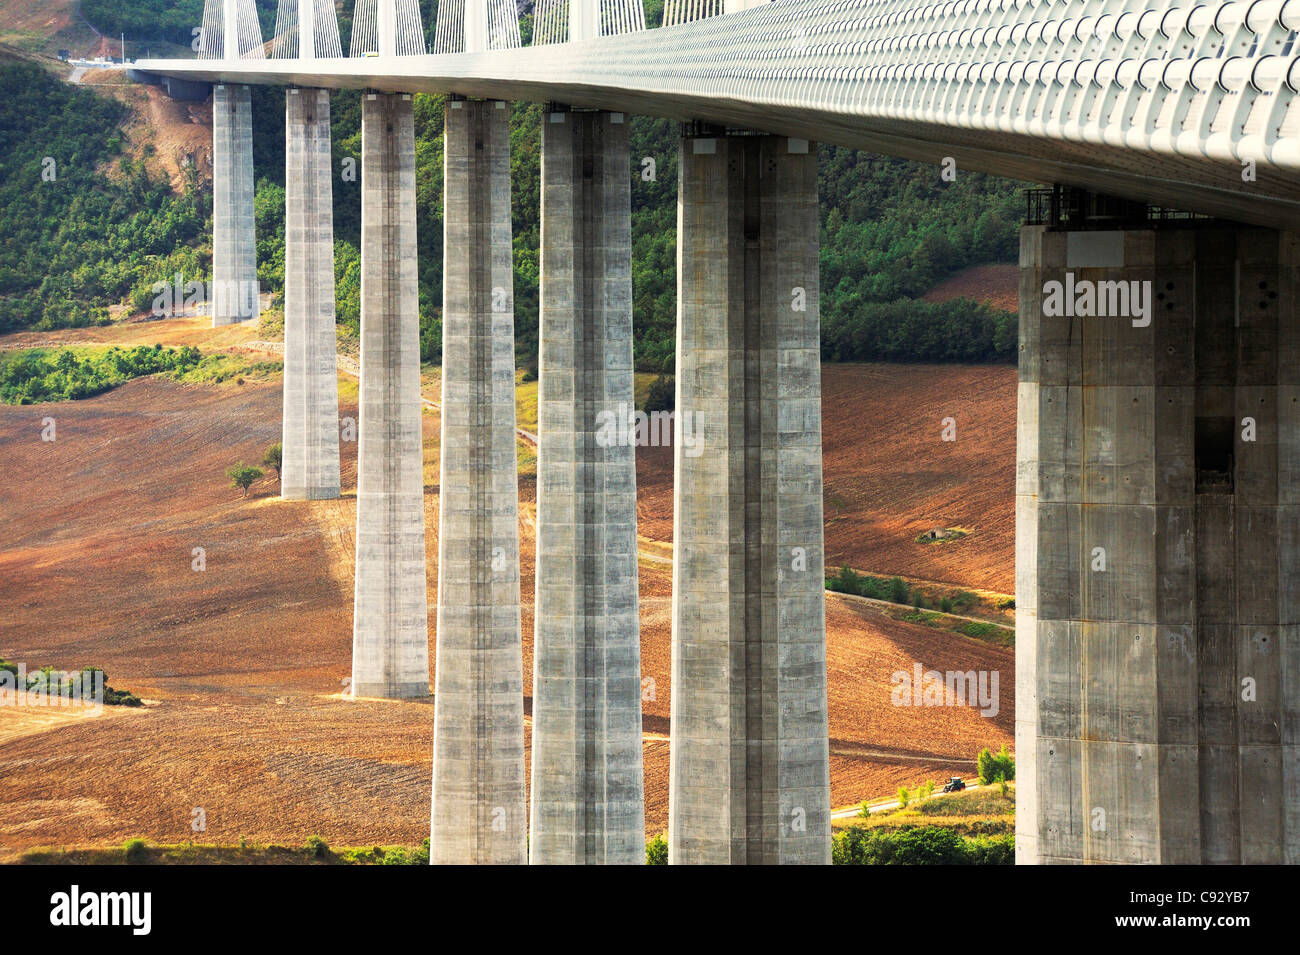 france french motorway autoroute stockfotos france french motorway autoroute bilder alamy. Black Bedroom Furniture Sets. Home Design Ideas